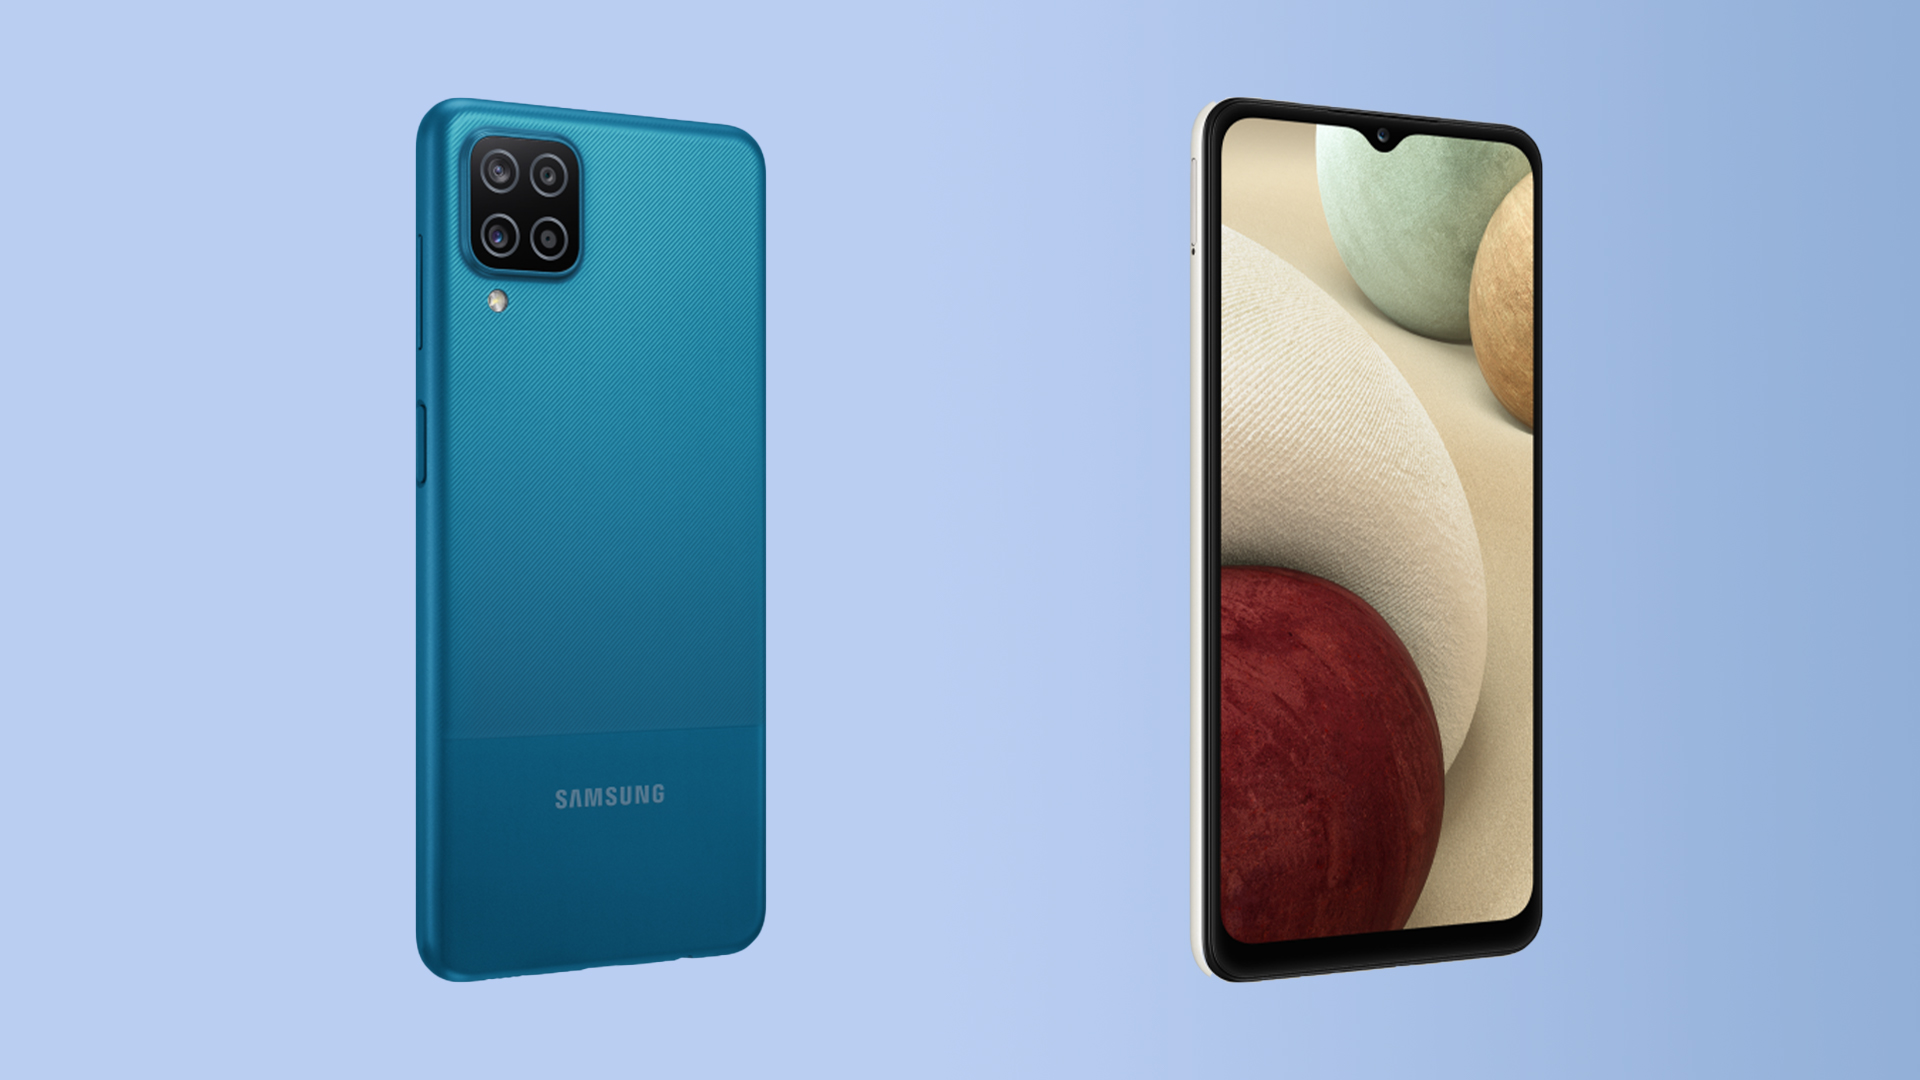 Galaxy A11 and Galaxy A12 get the September 2021 security update - SamMobile